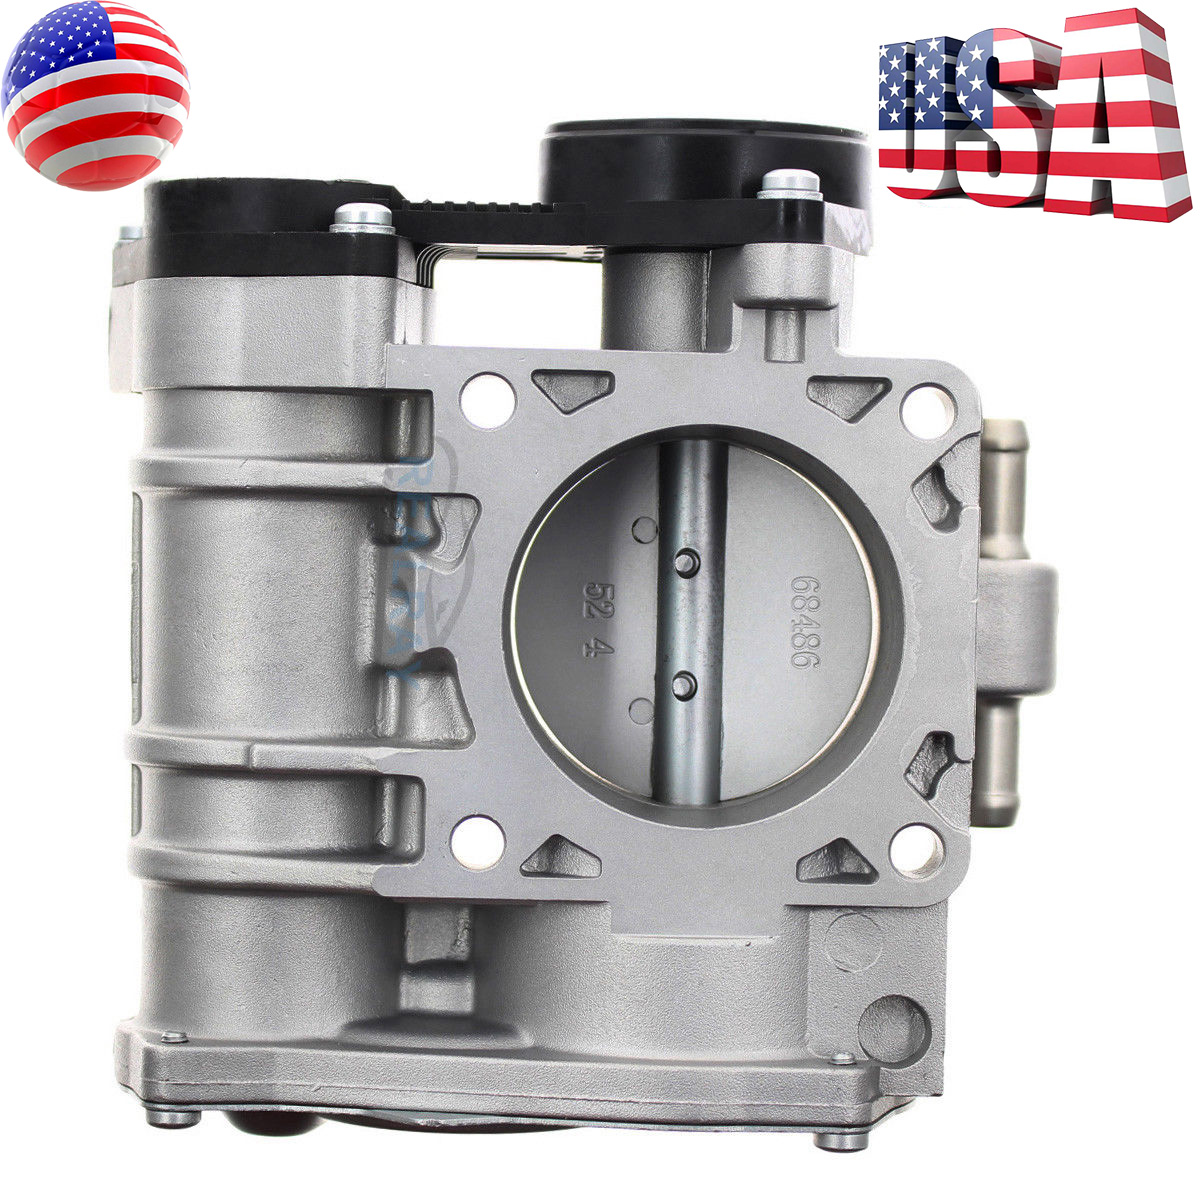 For Suzuki Forenza Reno I4 2.0L 06-08 Throttle Body Assembly 25368821 96417730